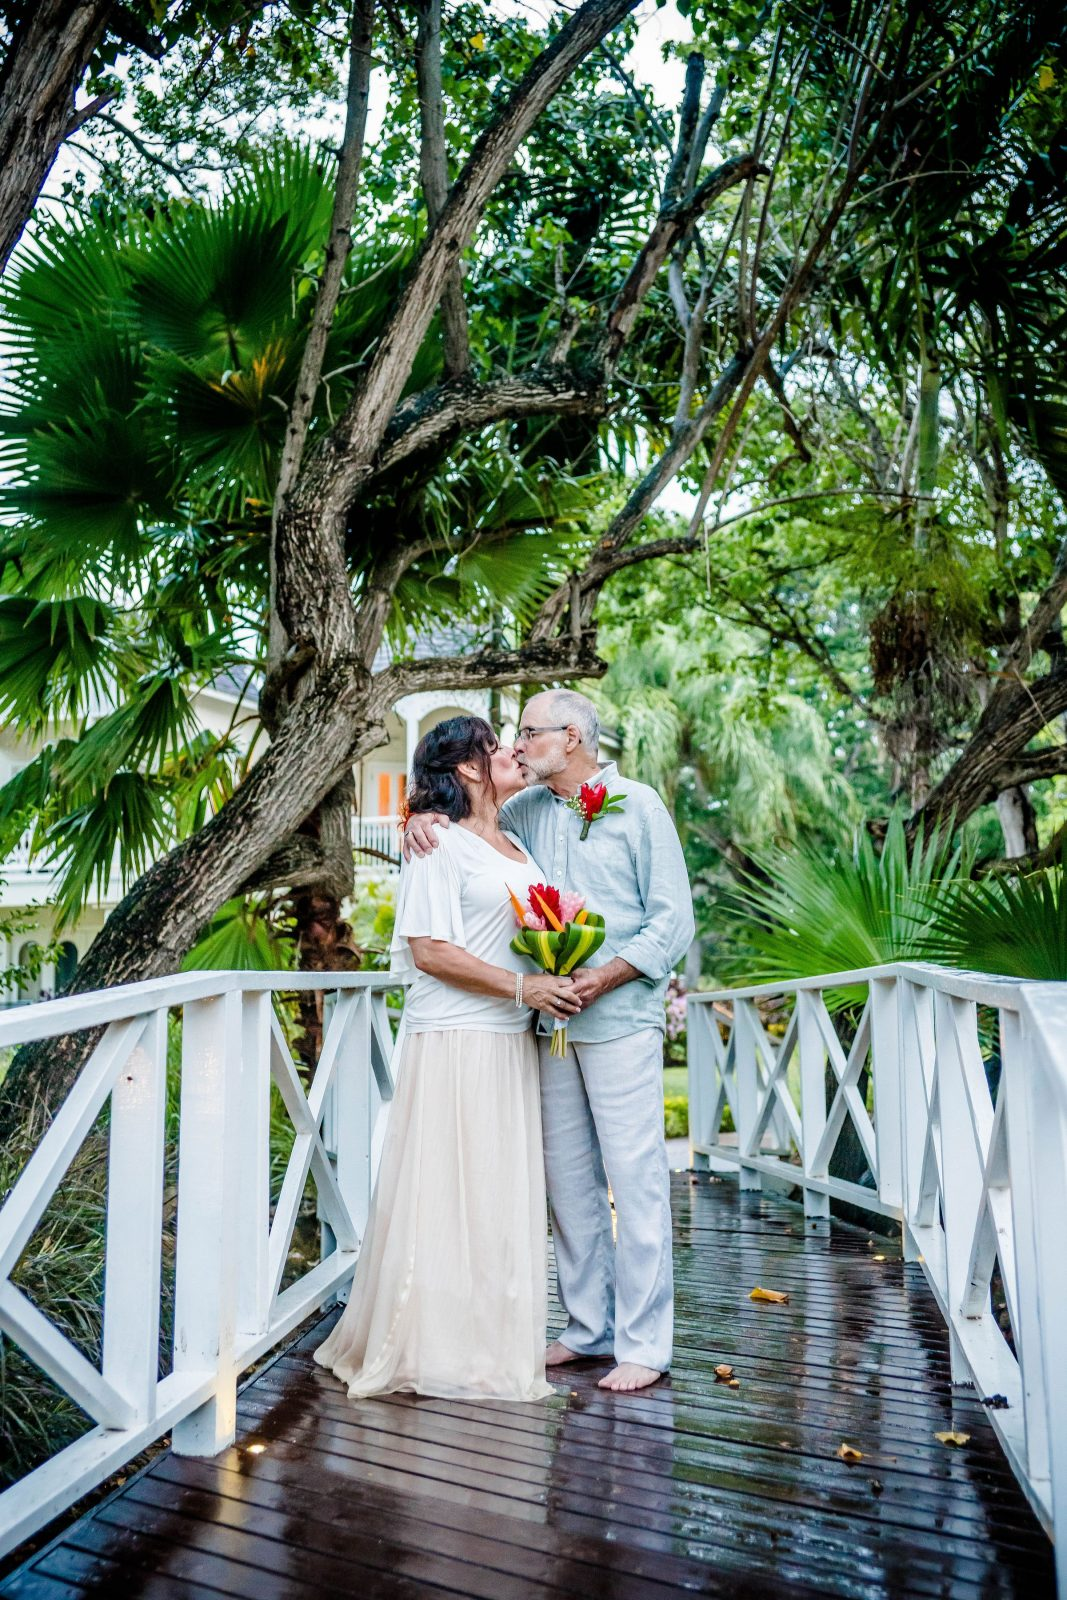 Beach wedding, bride and groom, relaxed bridal gown, bridal separates